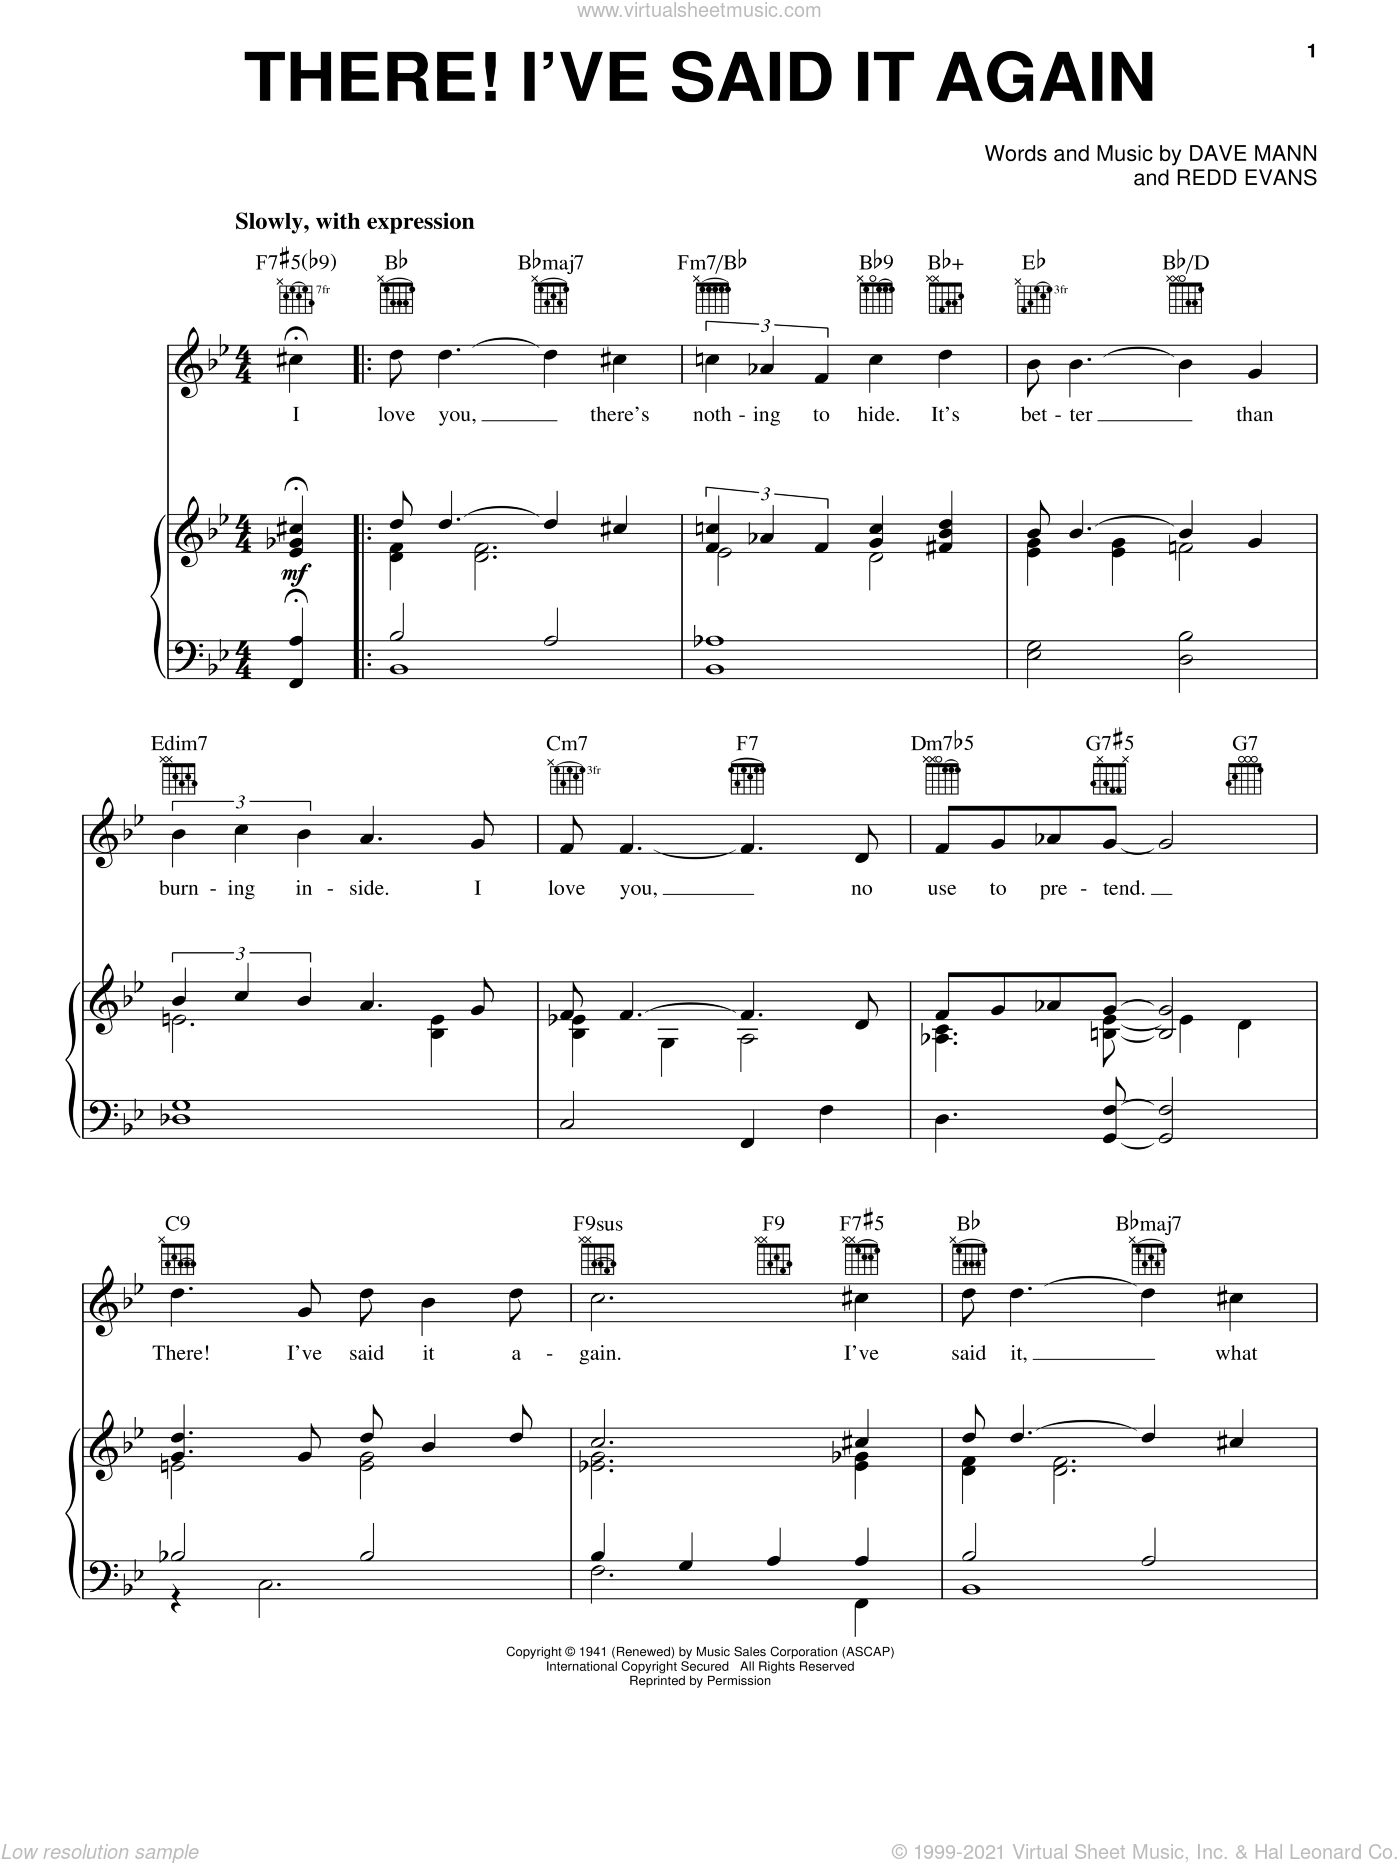 There! I've Said It Again sheet music for voice, piano or guitar by Redd Evans